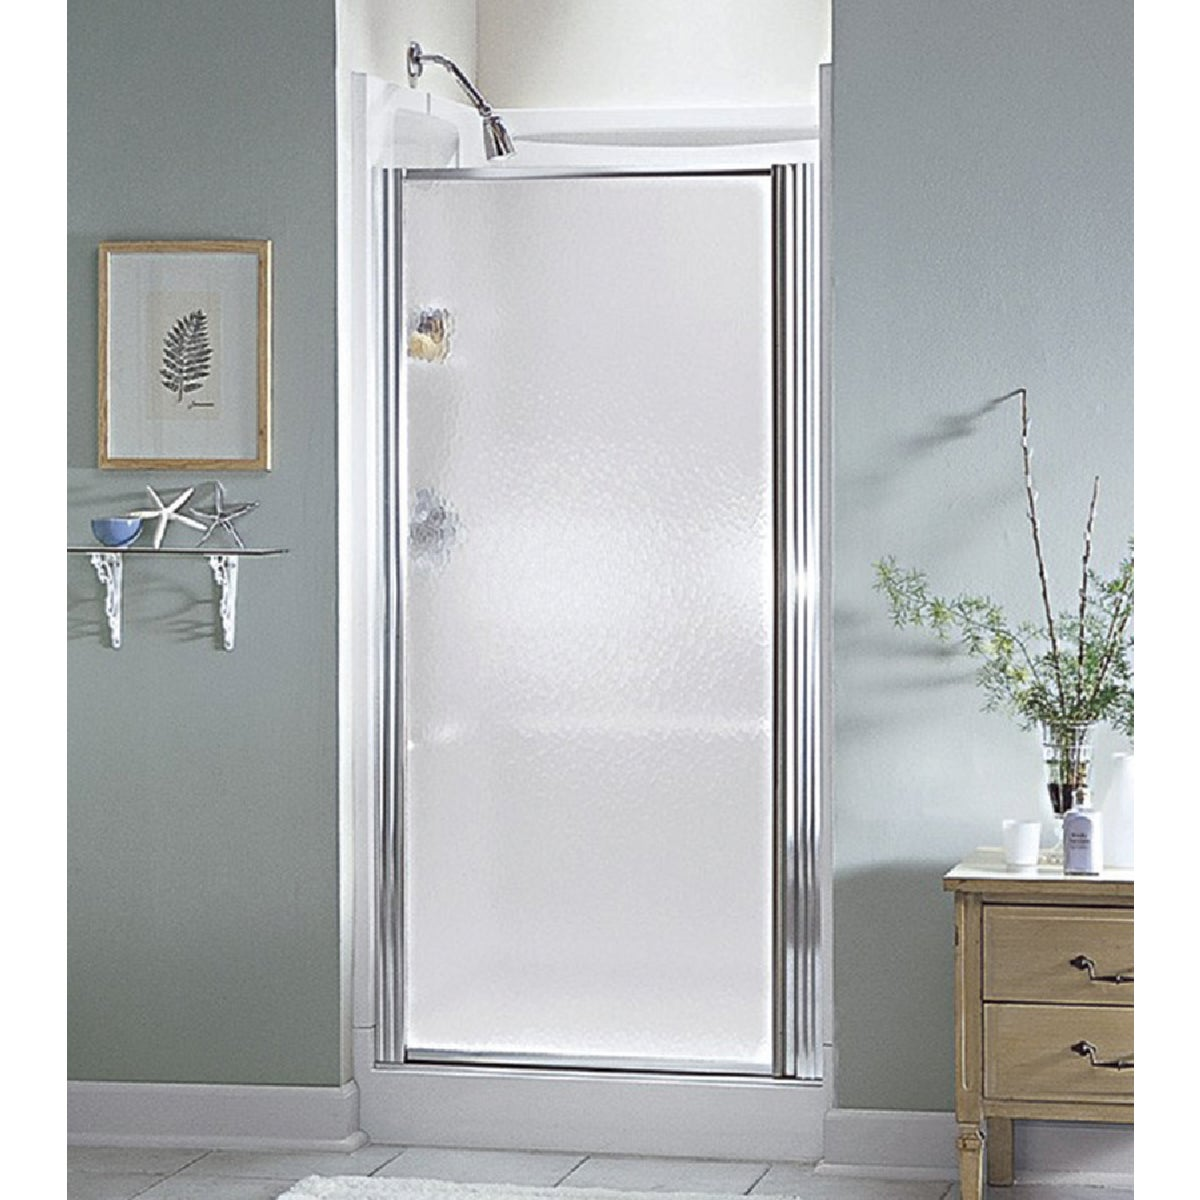 SILVER HINGED SHWR DOOR